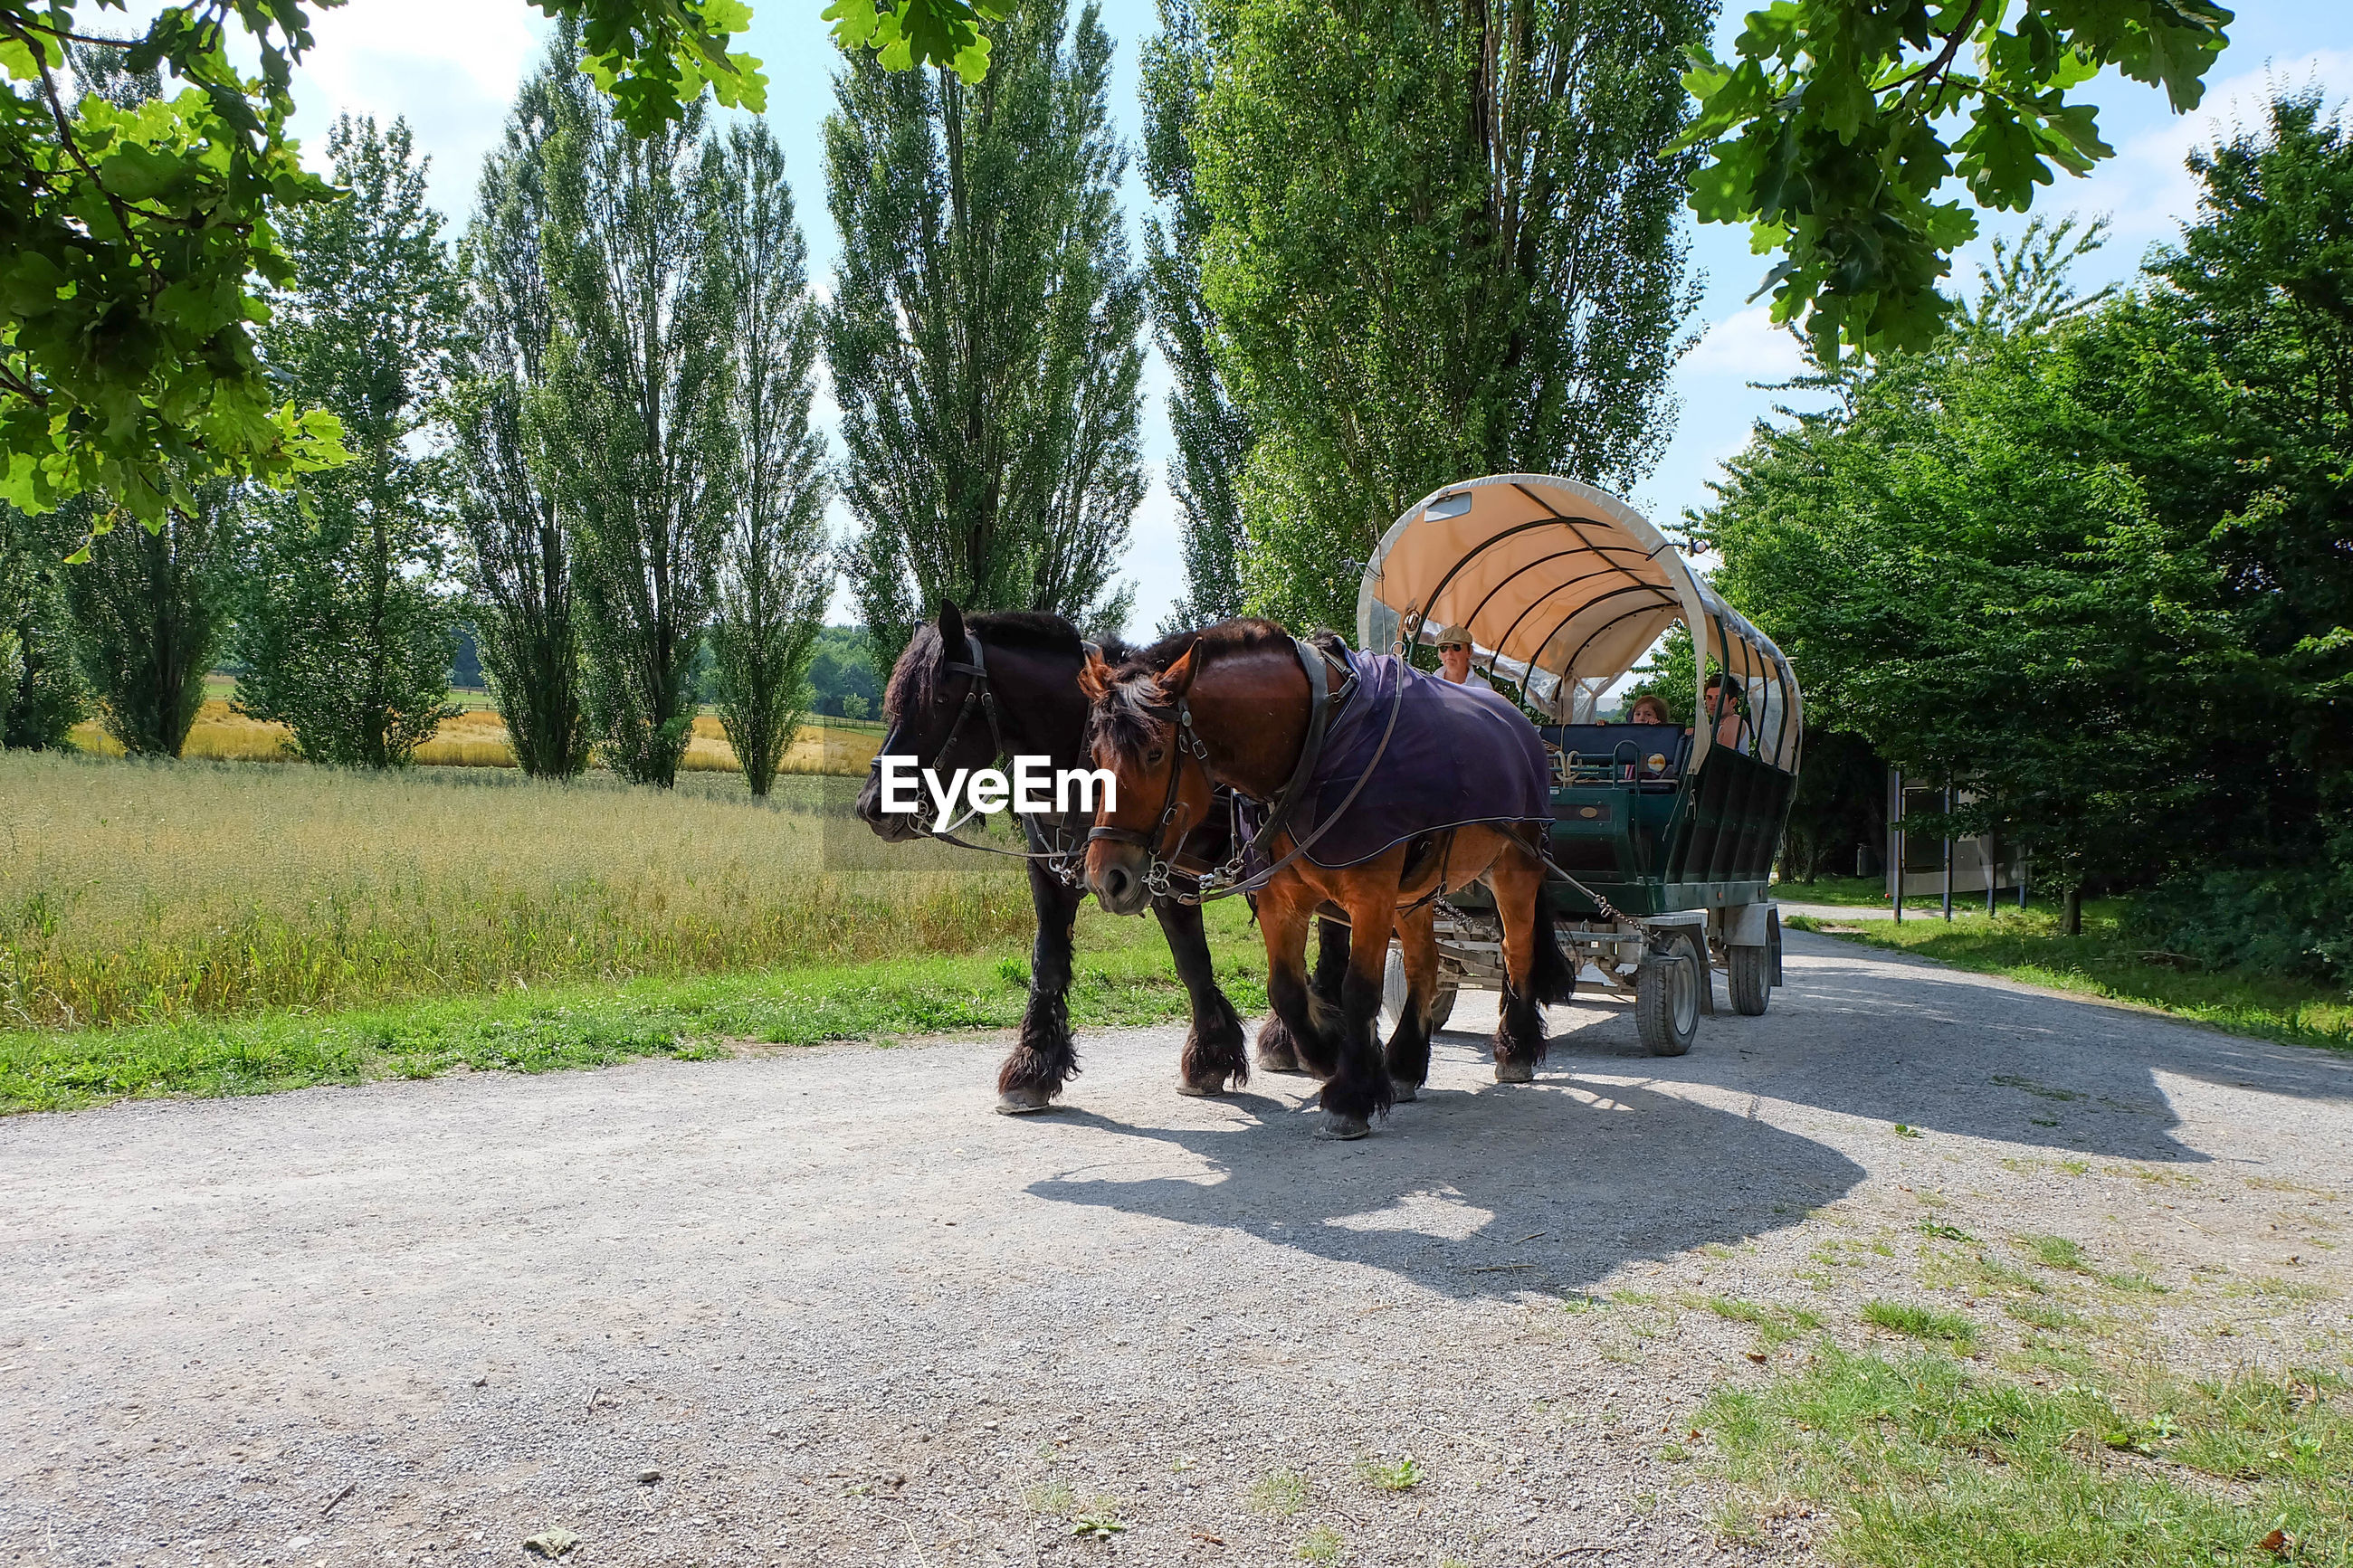 Horse cart on pathway by field